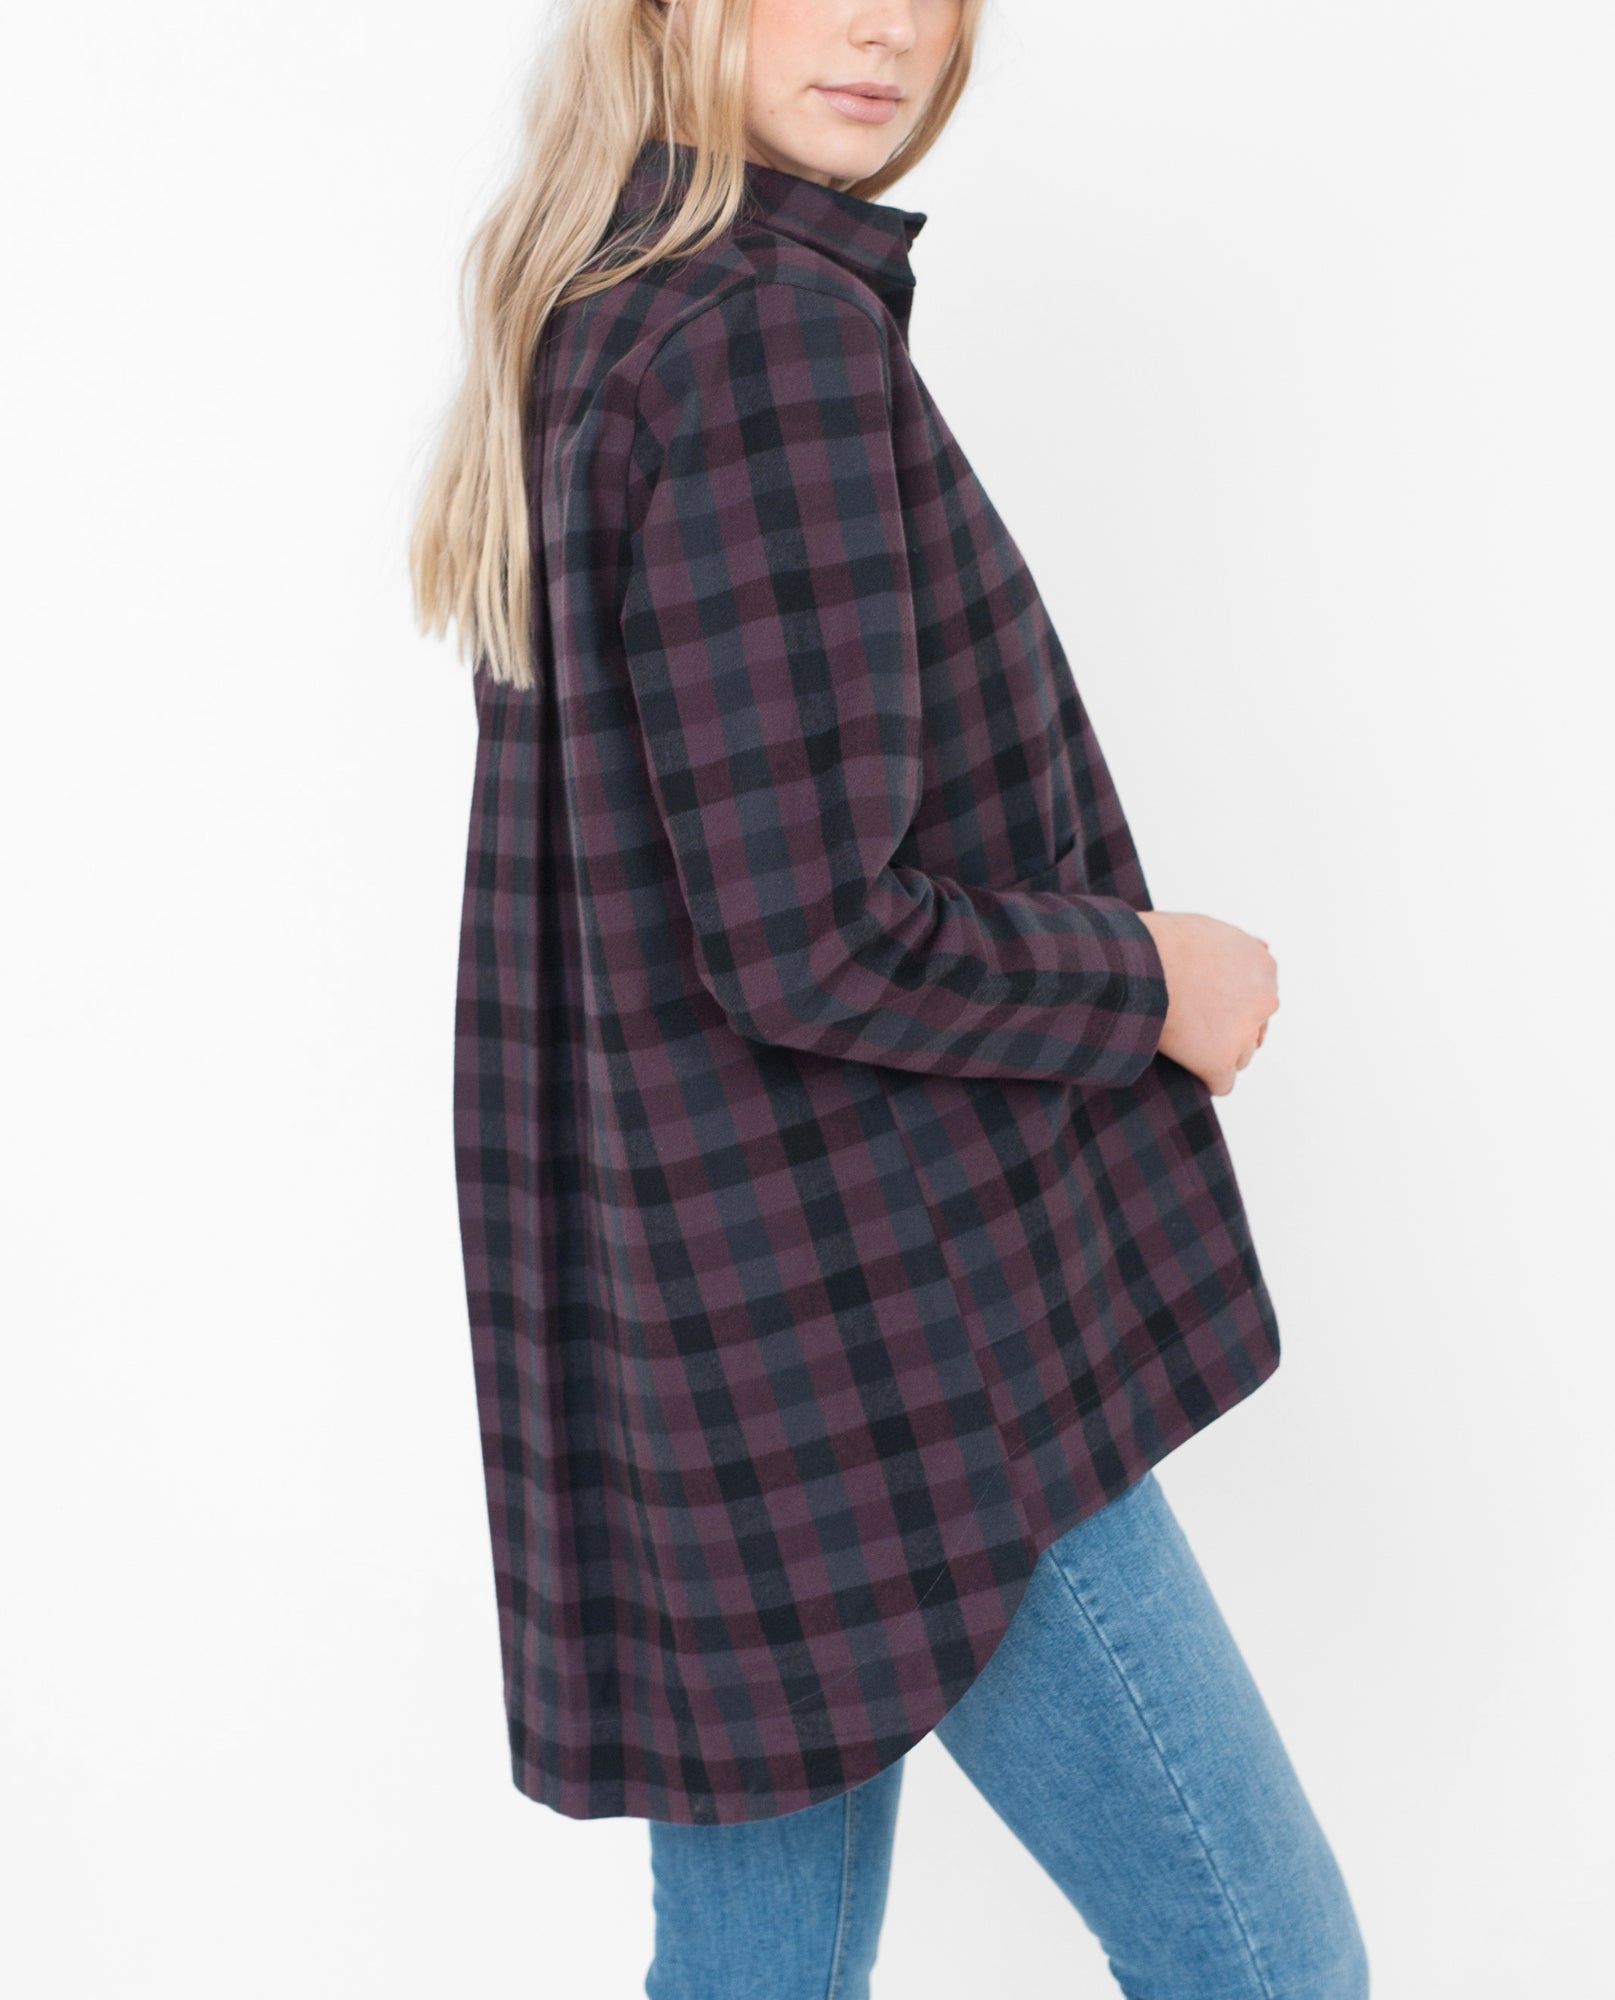 FRAN Checked Cotton Jacket In Bordeaux And Black